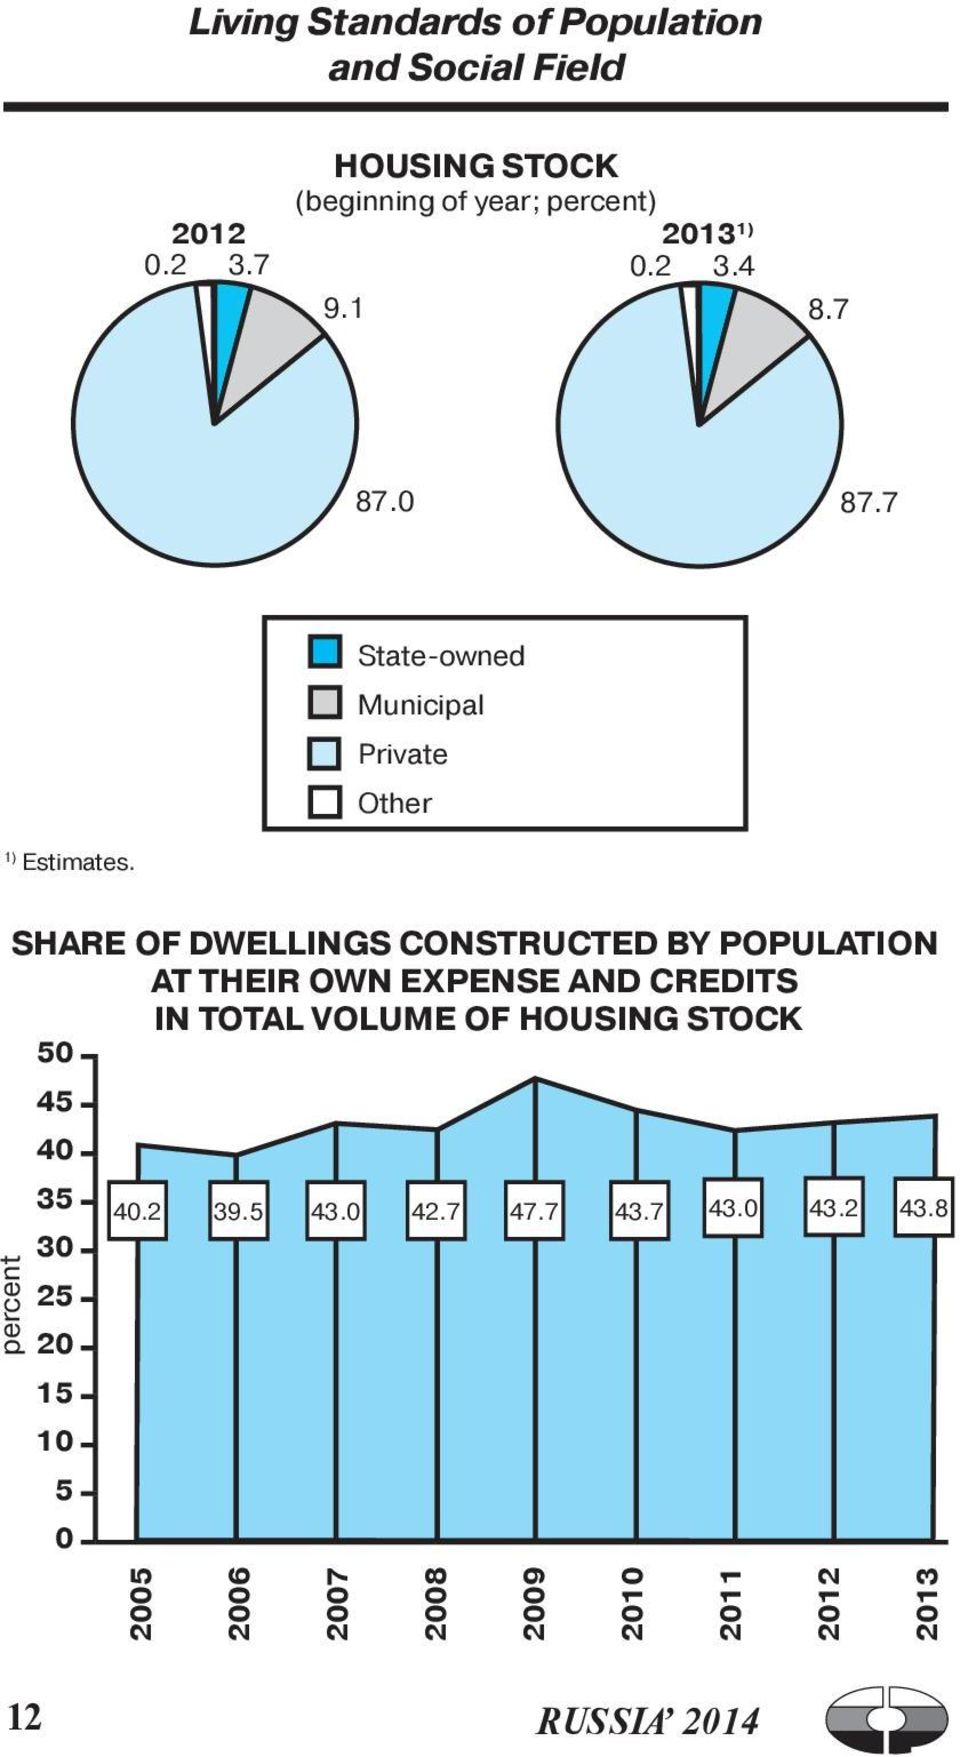 SHARE OF DwELLINGS CONSTRUCTED BY POPULATION AT THEIR OwN EXPENSE AND CREDITS IN TOTAL VOLUME OF